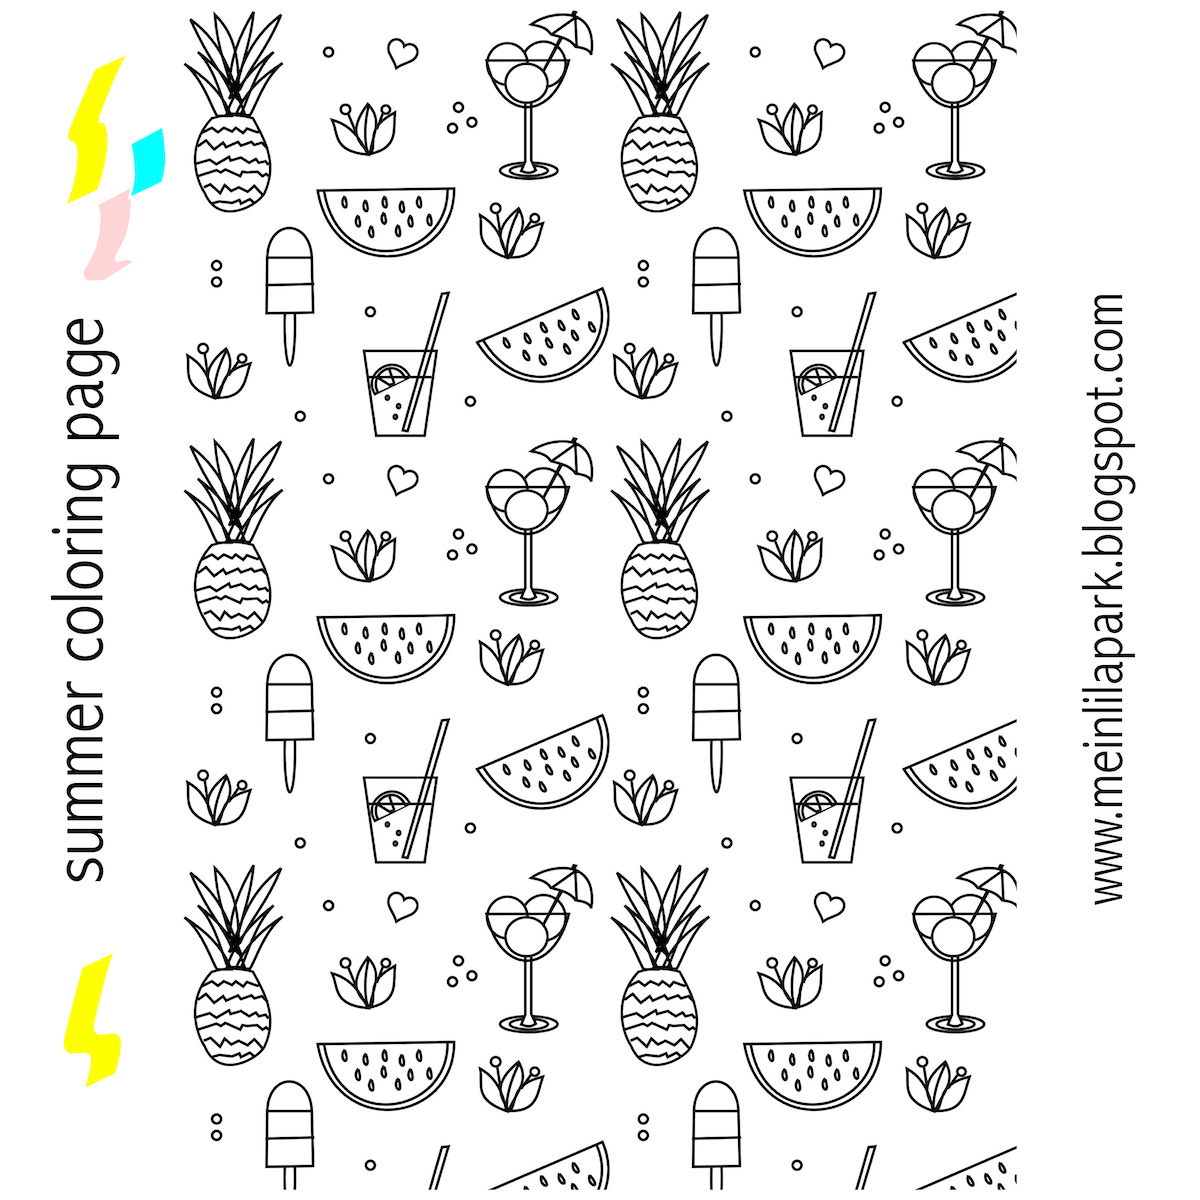 today ive drawn a free printable summer coloring page for you pineapples water melons sundaes popsicles exotic blossoms and lemonade glasses cover the - Printable Popsicle Coloring Pages